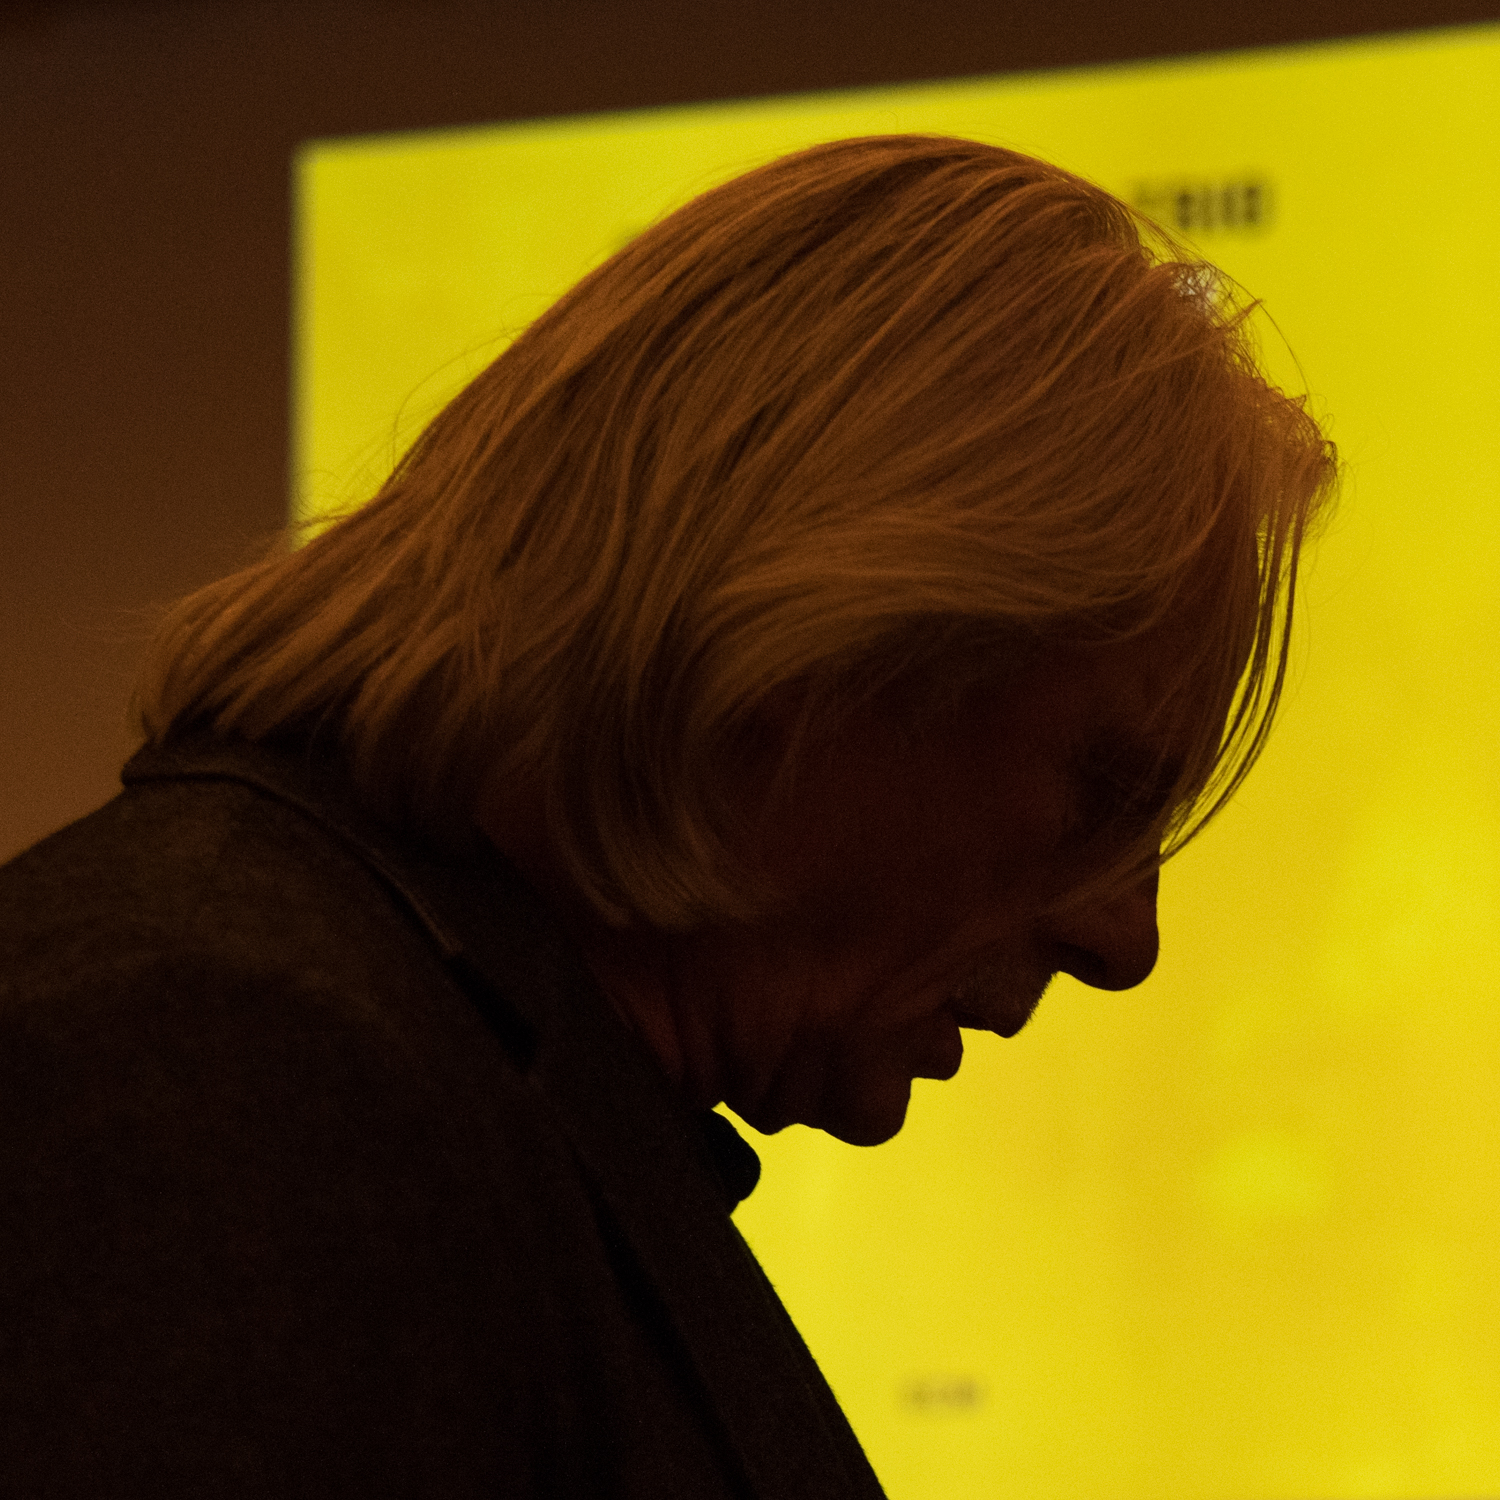 Manfred Eicher, 2016